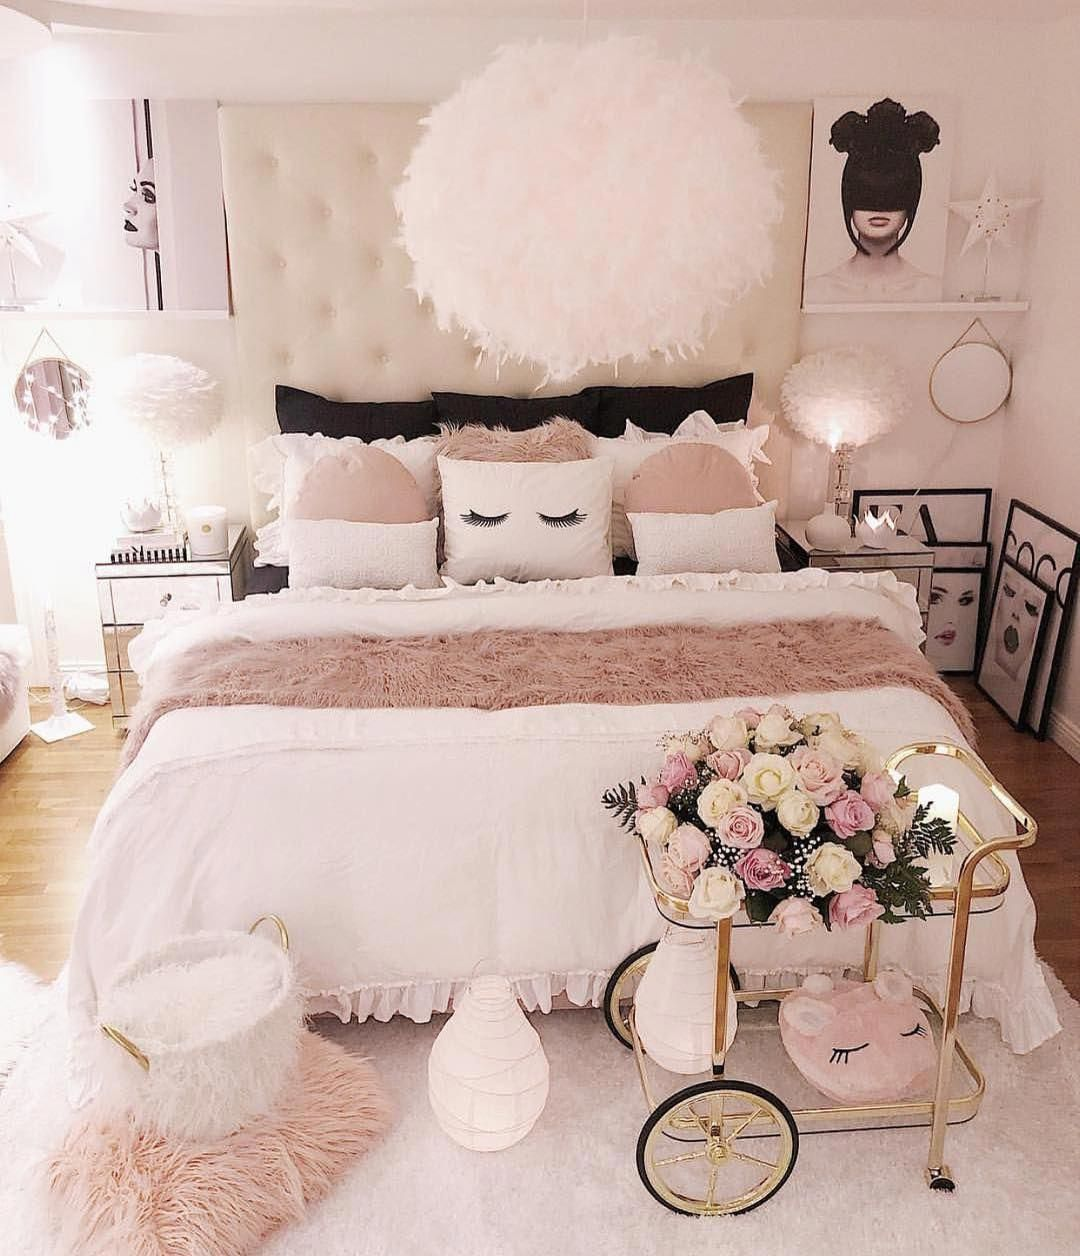 pin on houses interior on best bed designs ideas for kids room new questions concerning ideas and bed designs id=56707